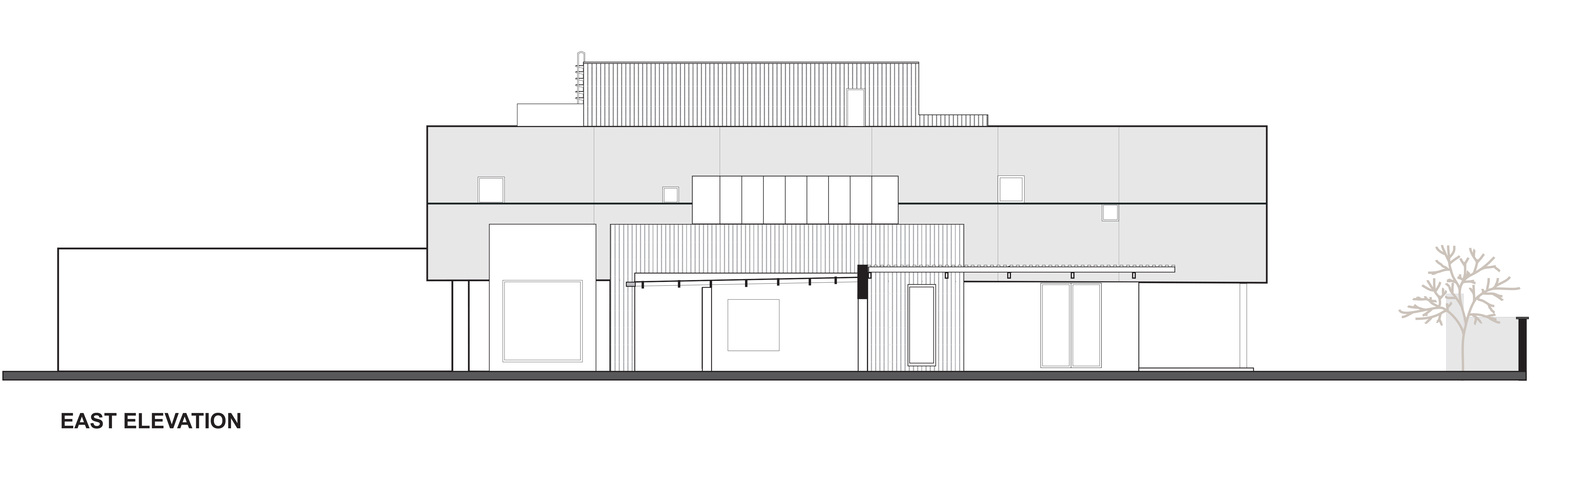 the wolf house east elevation [ 1582 x 502 Pixel ]